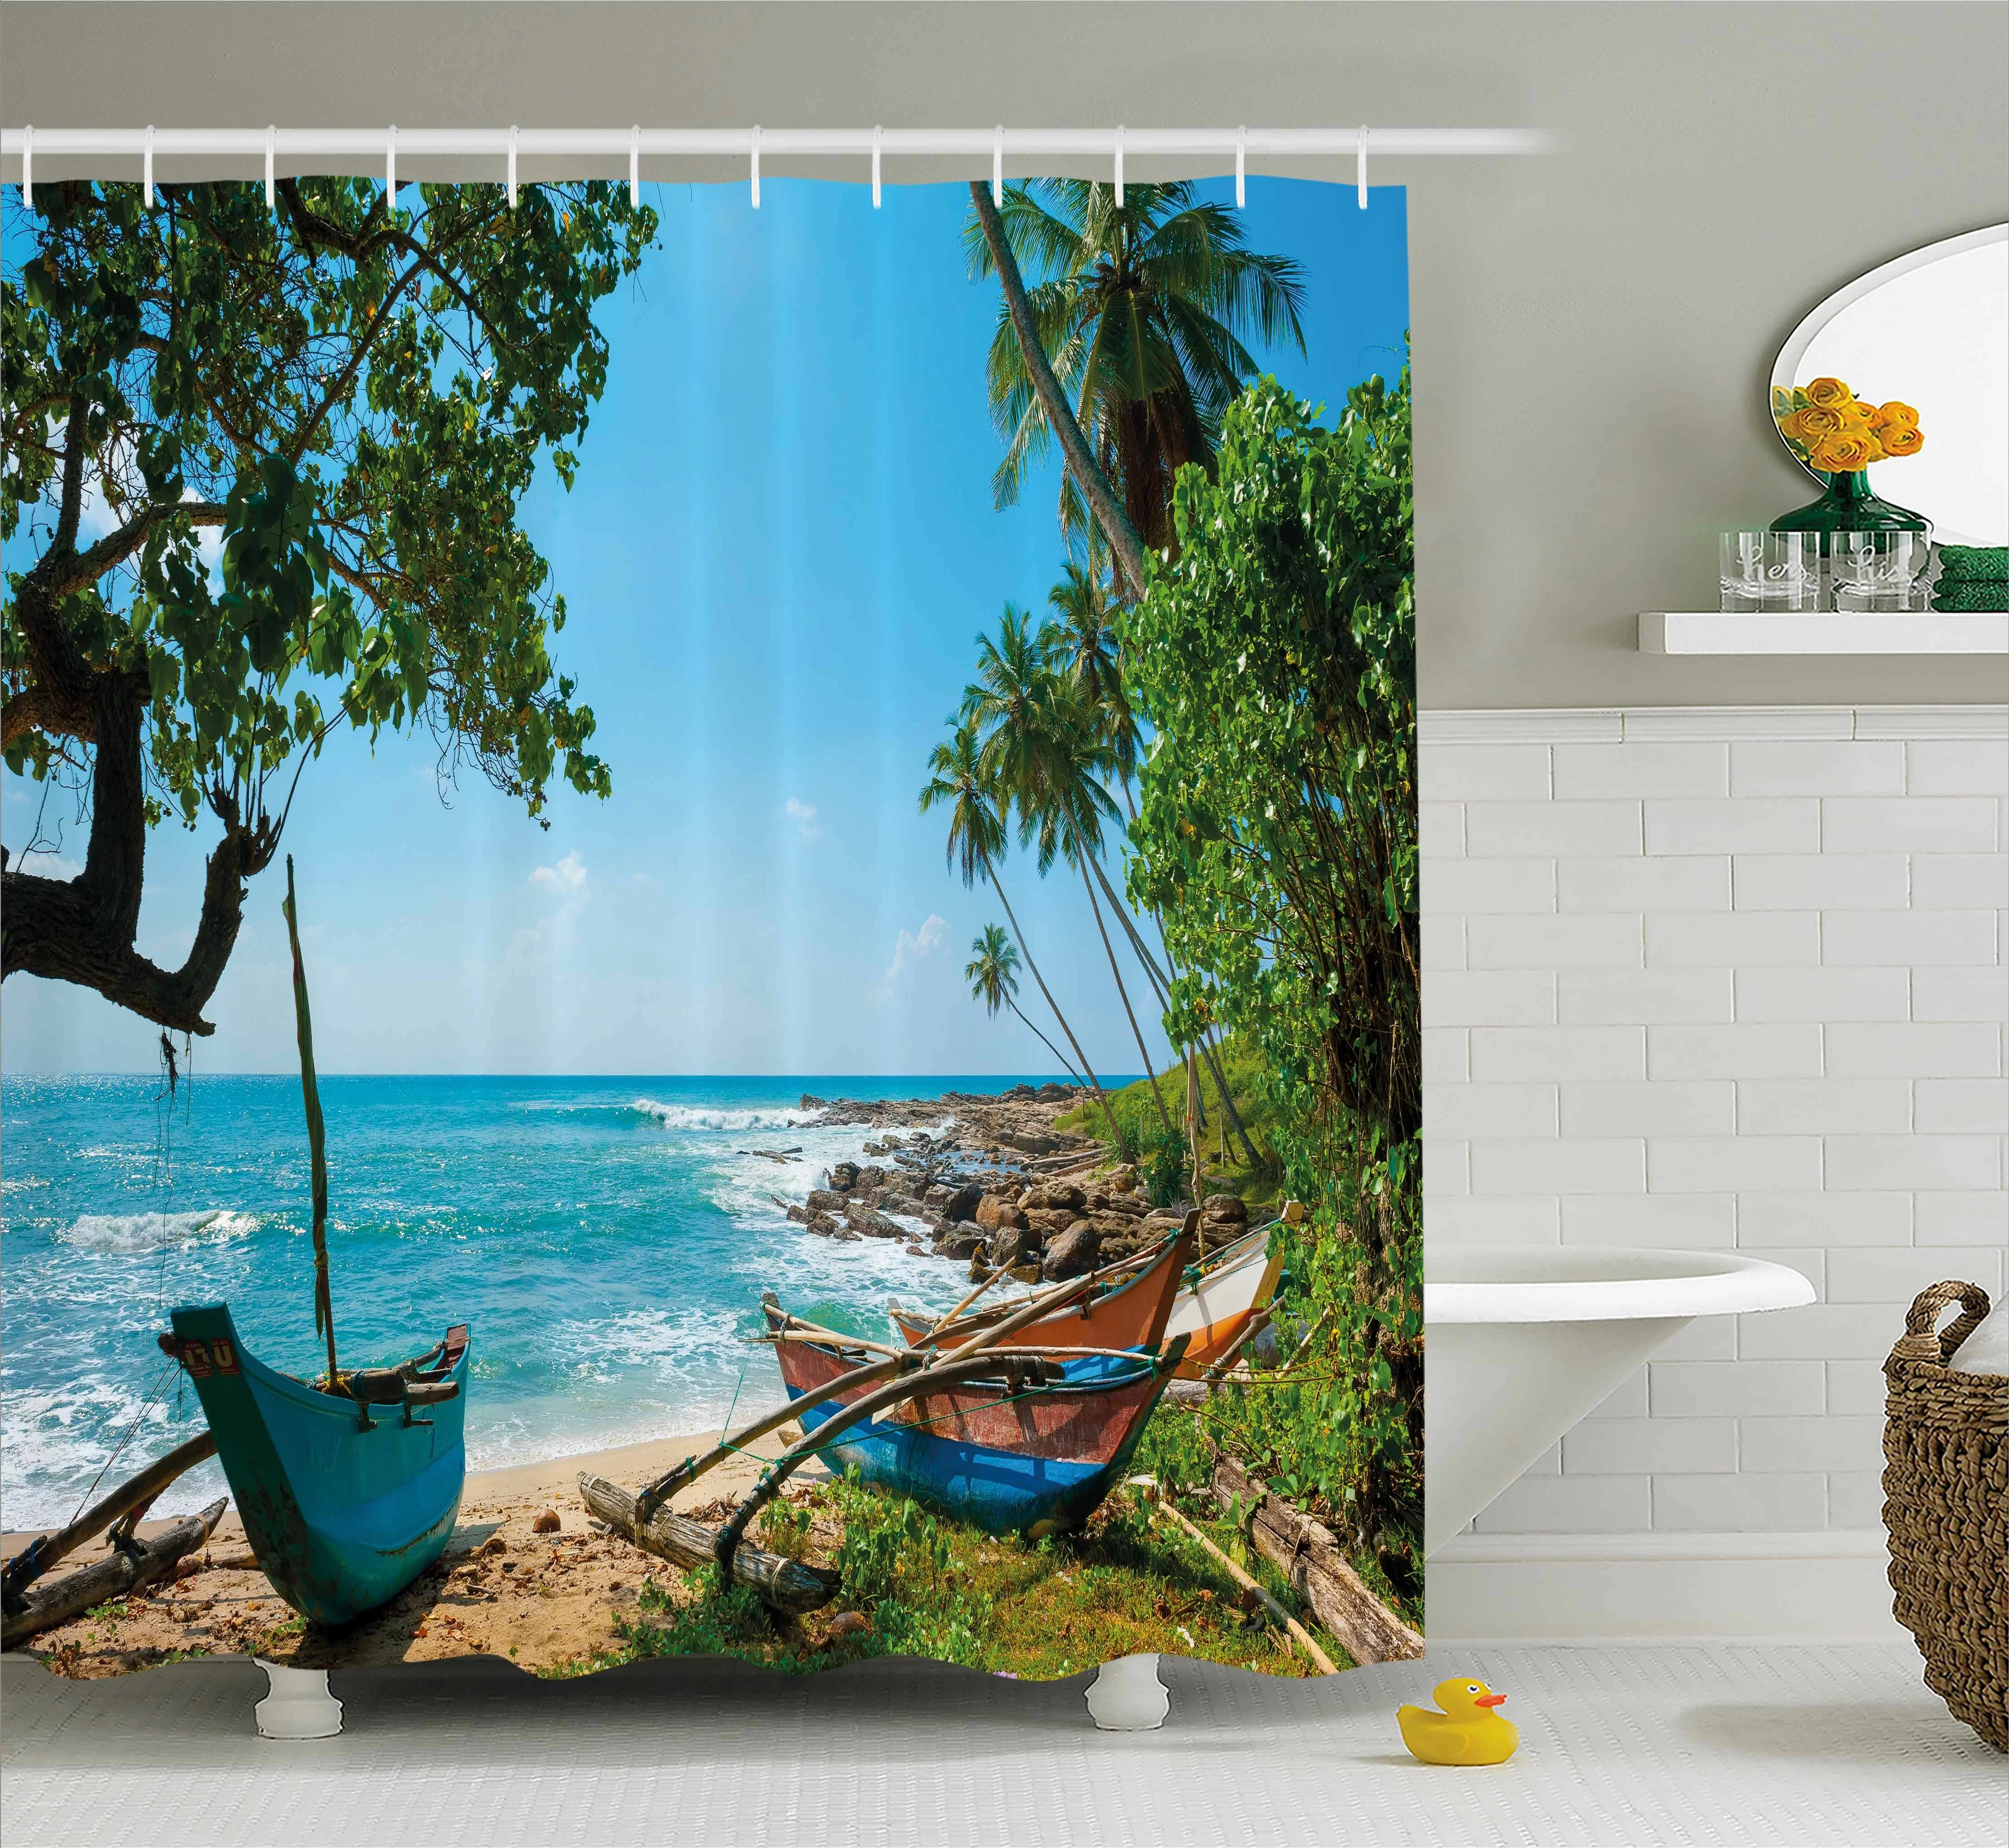 bayou breeze renato beach tropical ocean scenery with palm trees and fishing boats caribbean landscape single shower curtain wayfair